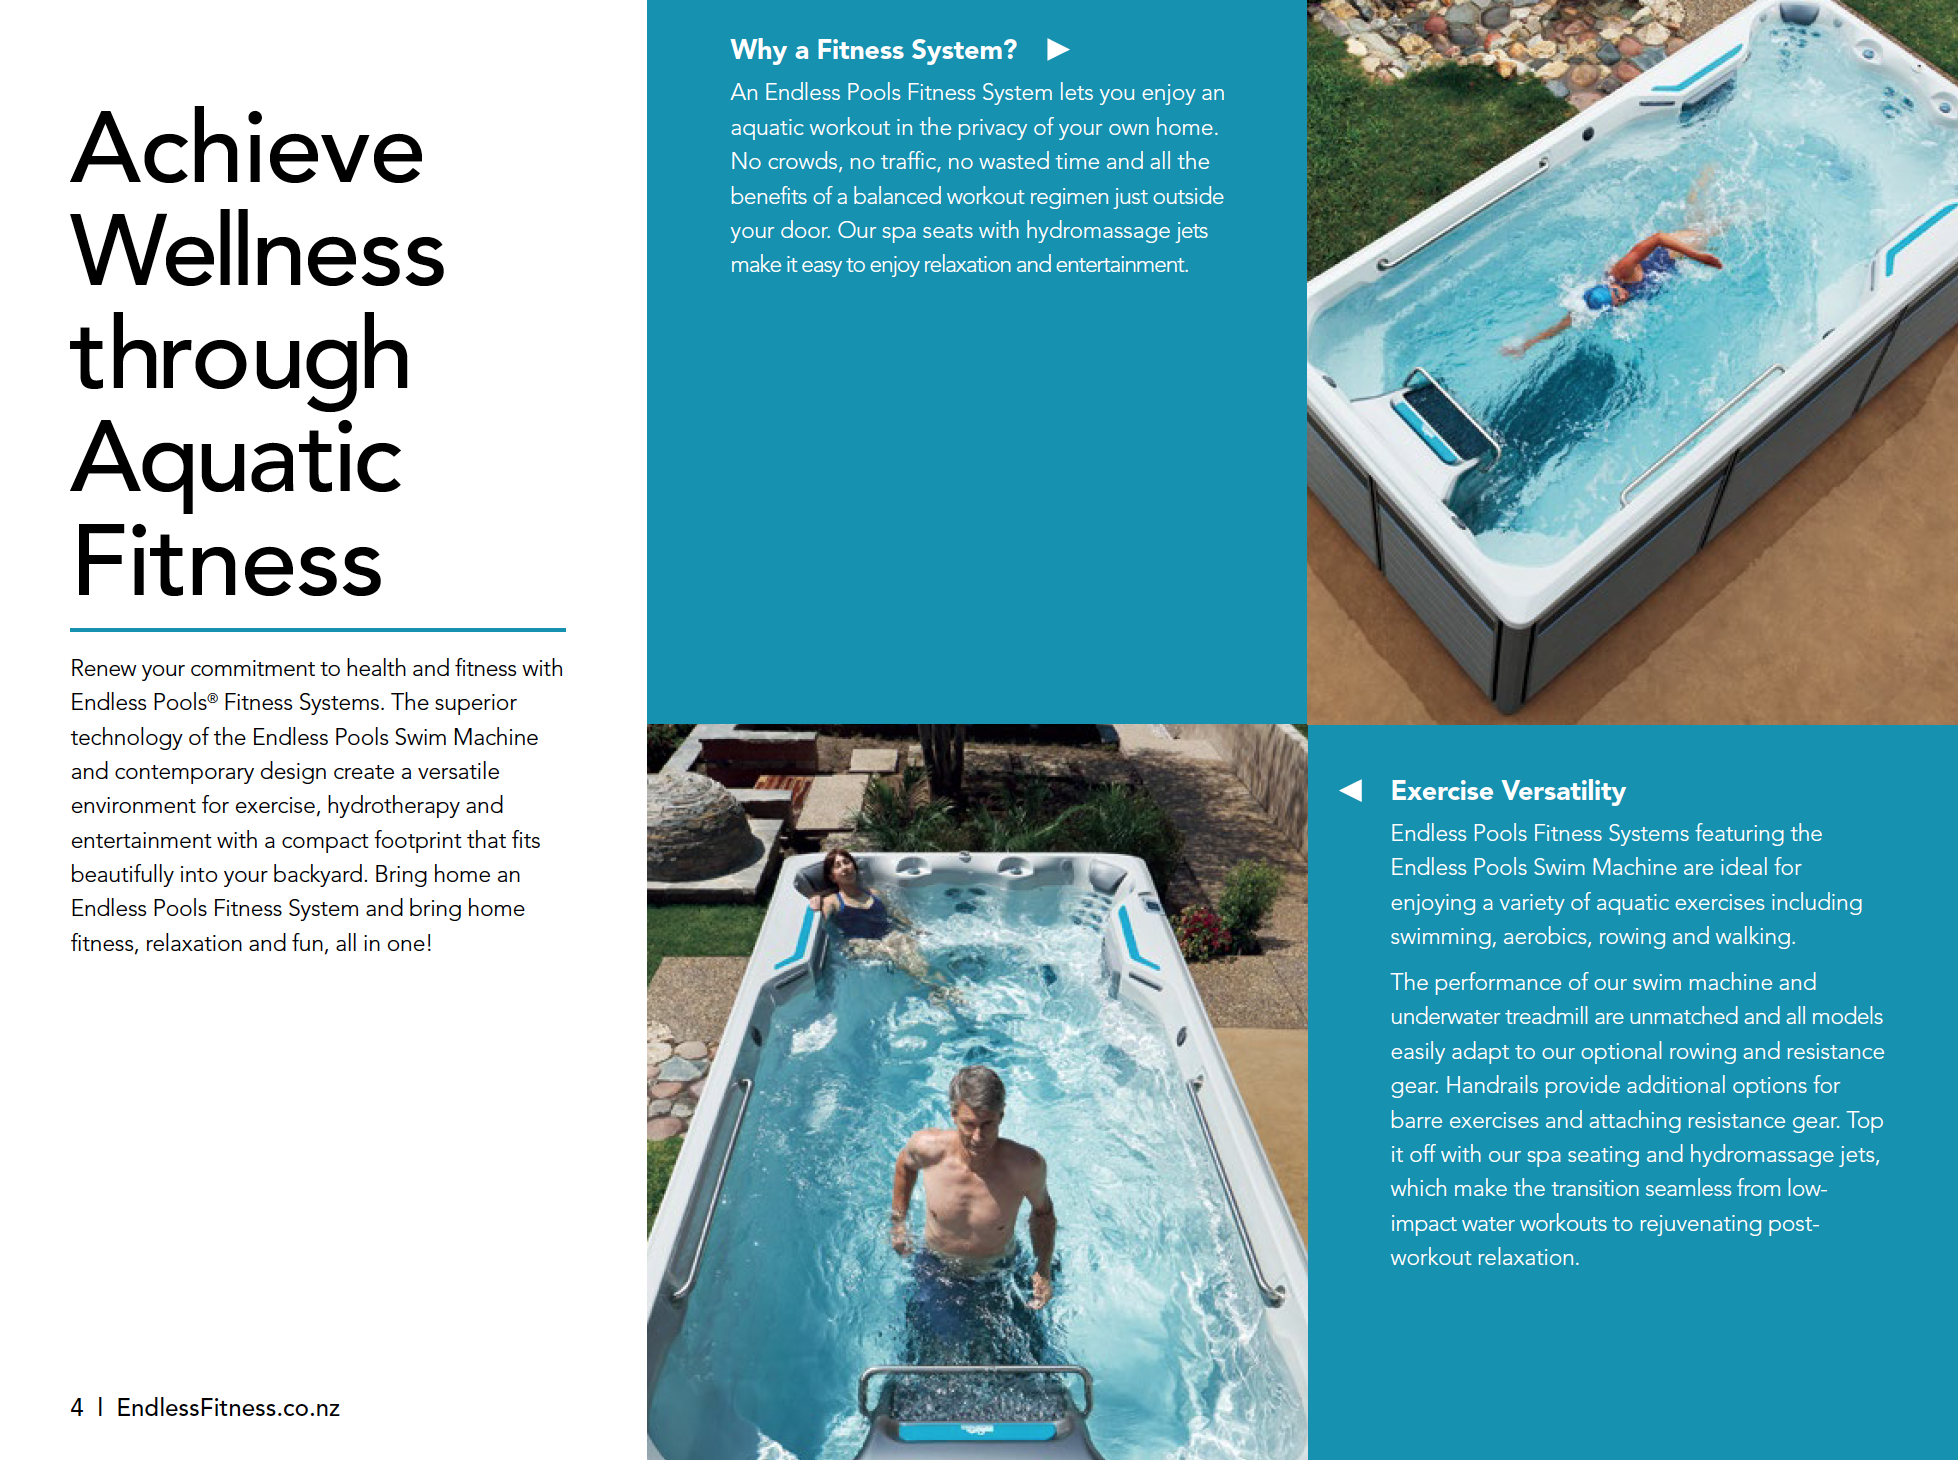 swim-spa-nz-endless-pools-2020-04-18-at-9.55.06-am-19.png